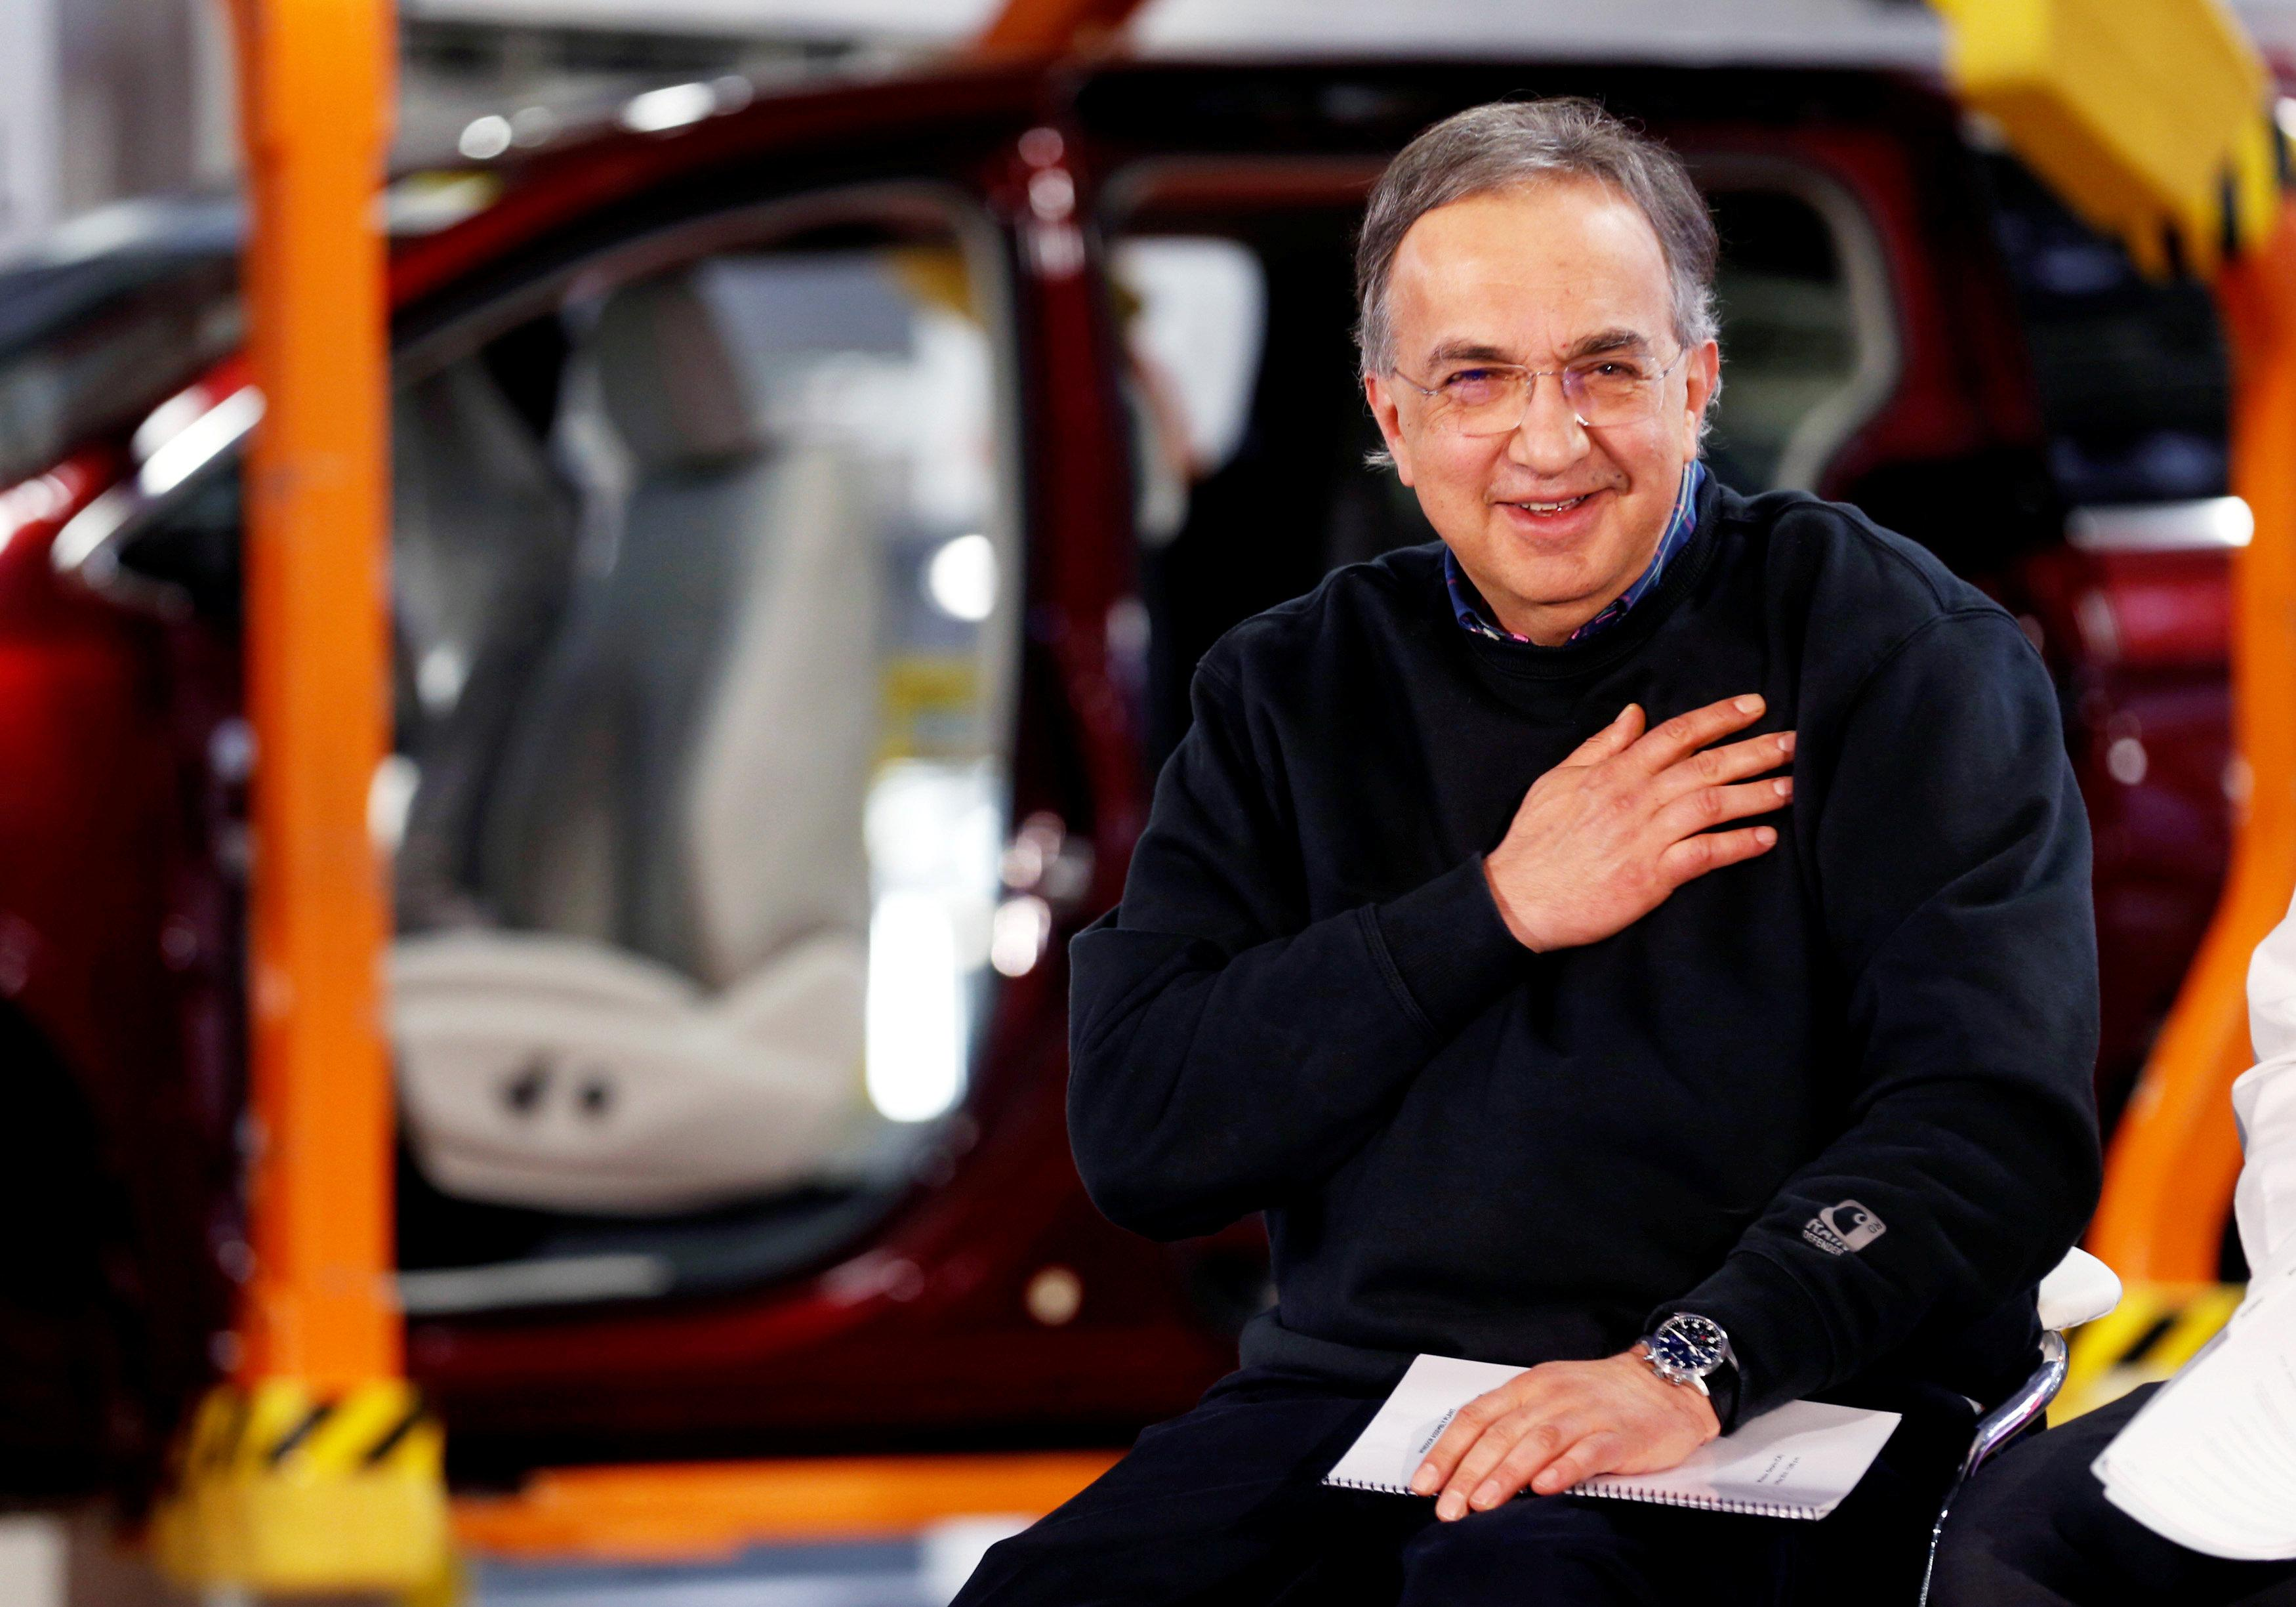 FCA CEO Sergio Marchionne attends the celebration of the production launch of the all-new 2017 Chrysler Pacifica minivan at the FCA Windsor Assembly plant in Windsor, Ontario, U.S. May 6, 2016. Rebecca Cook